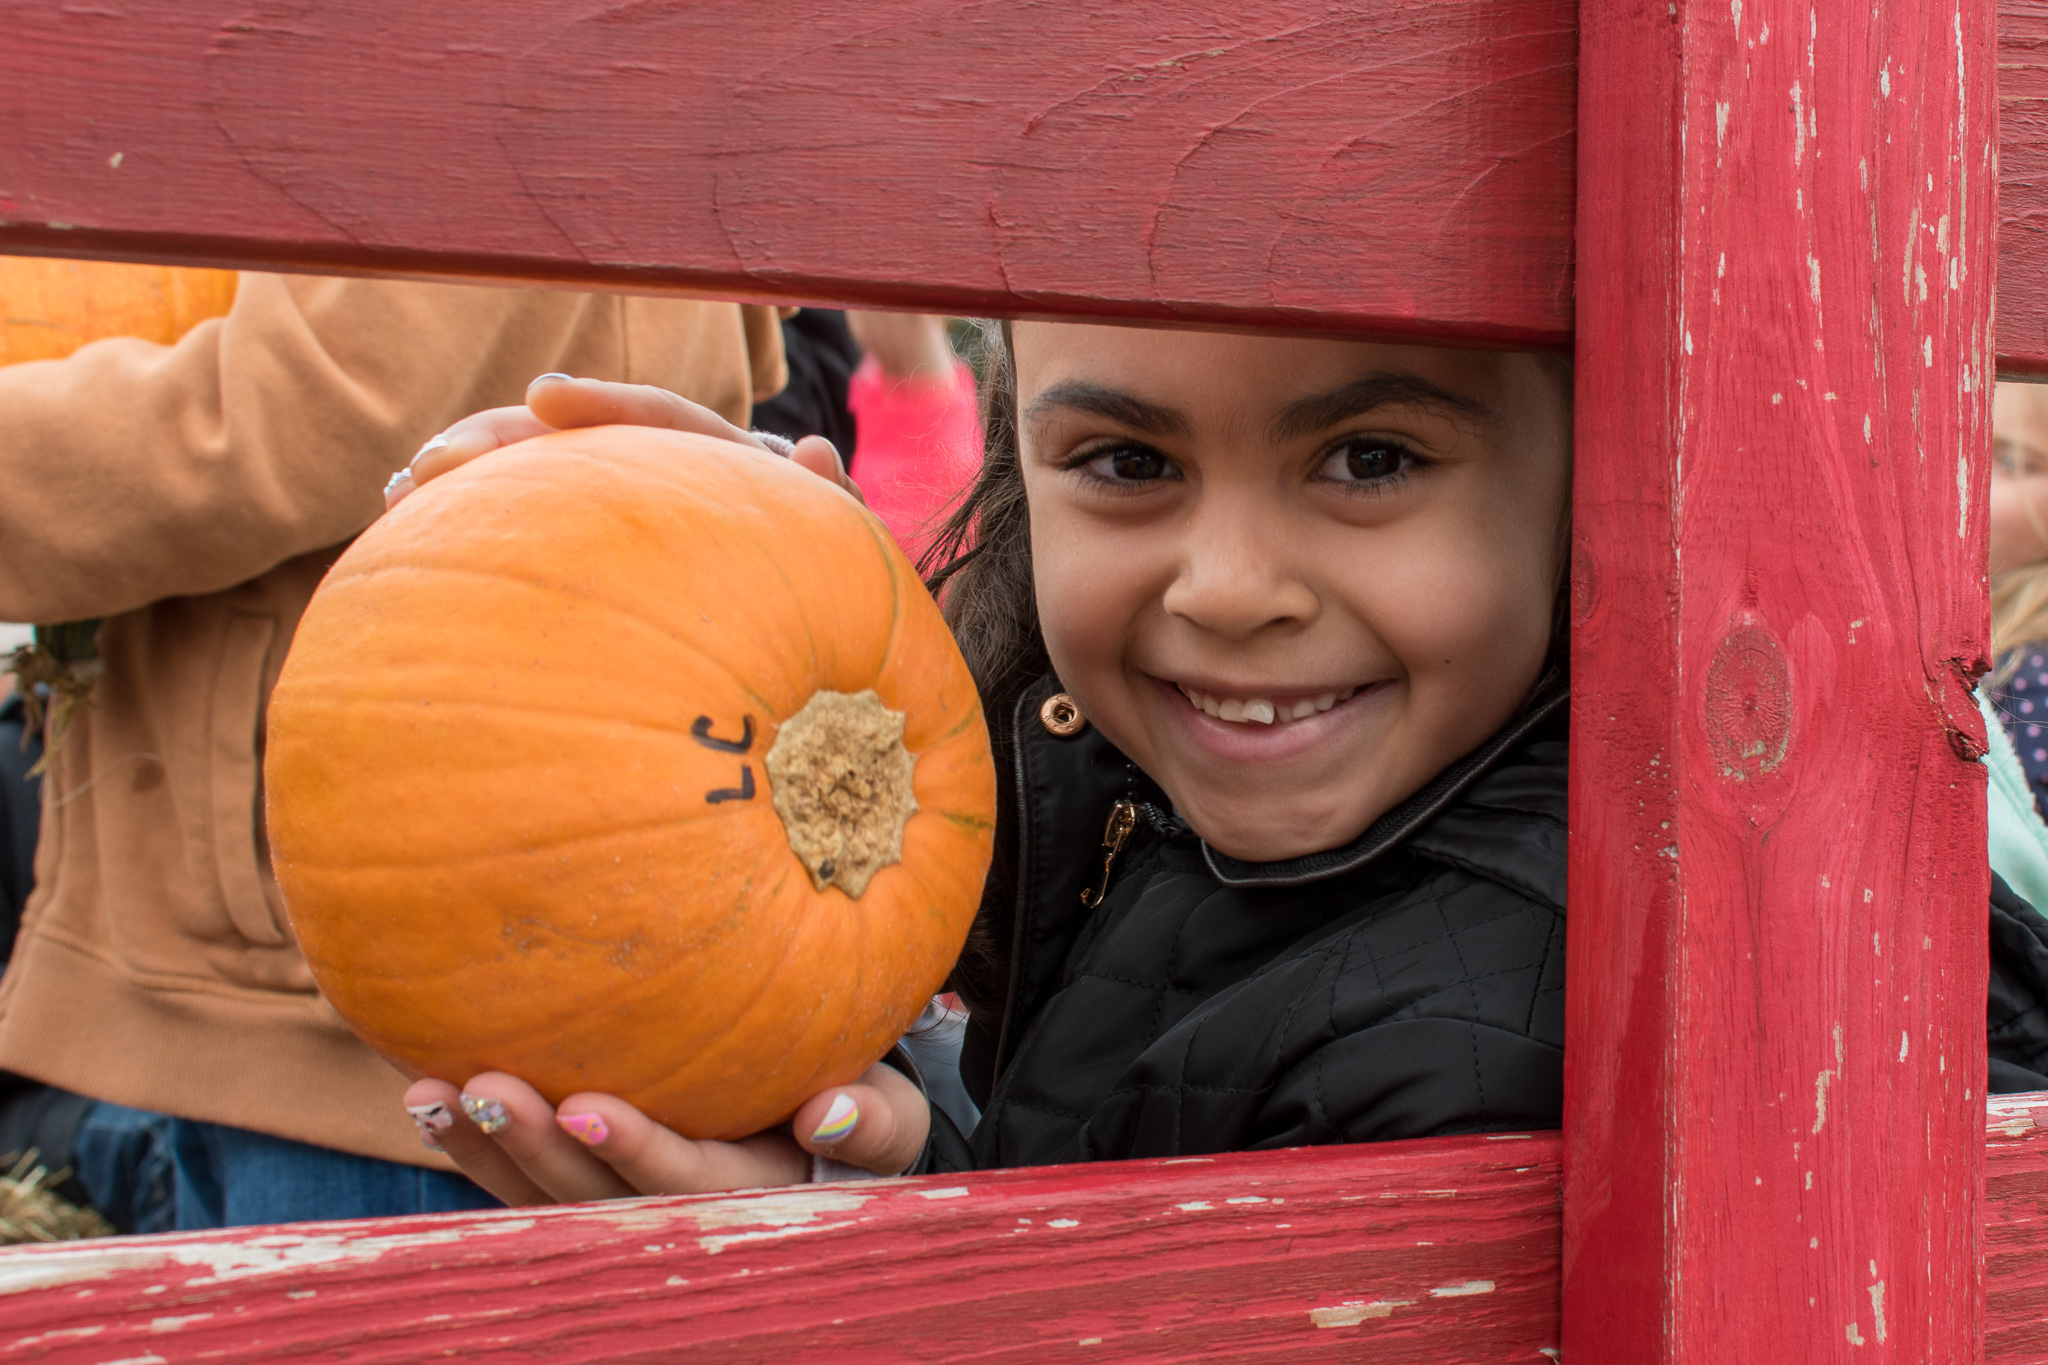 Young girl with a pumpkin